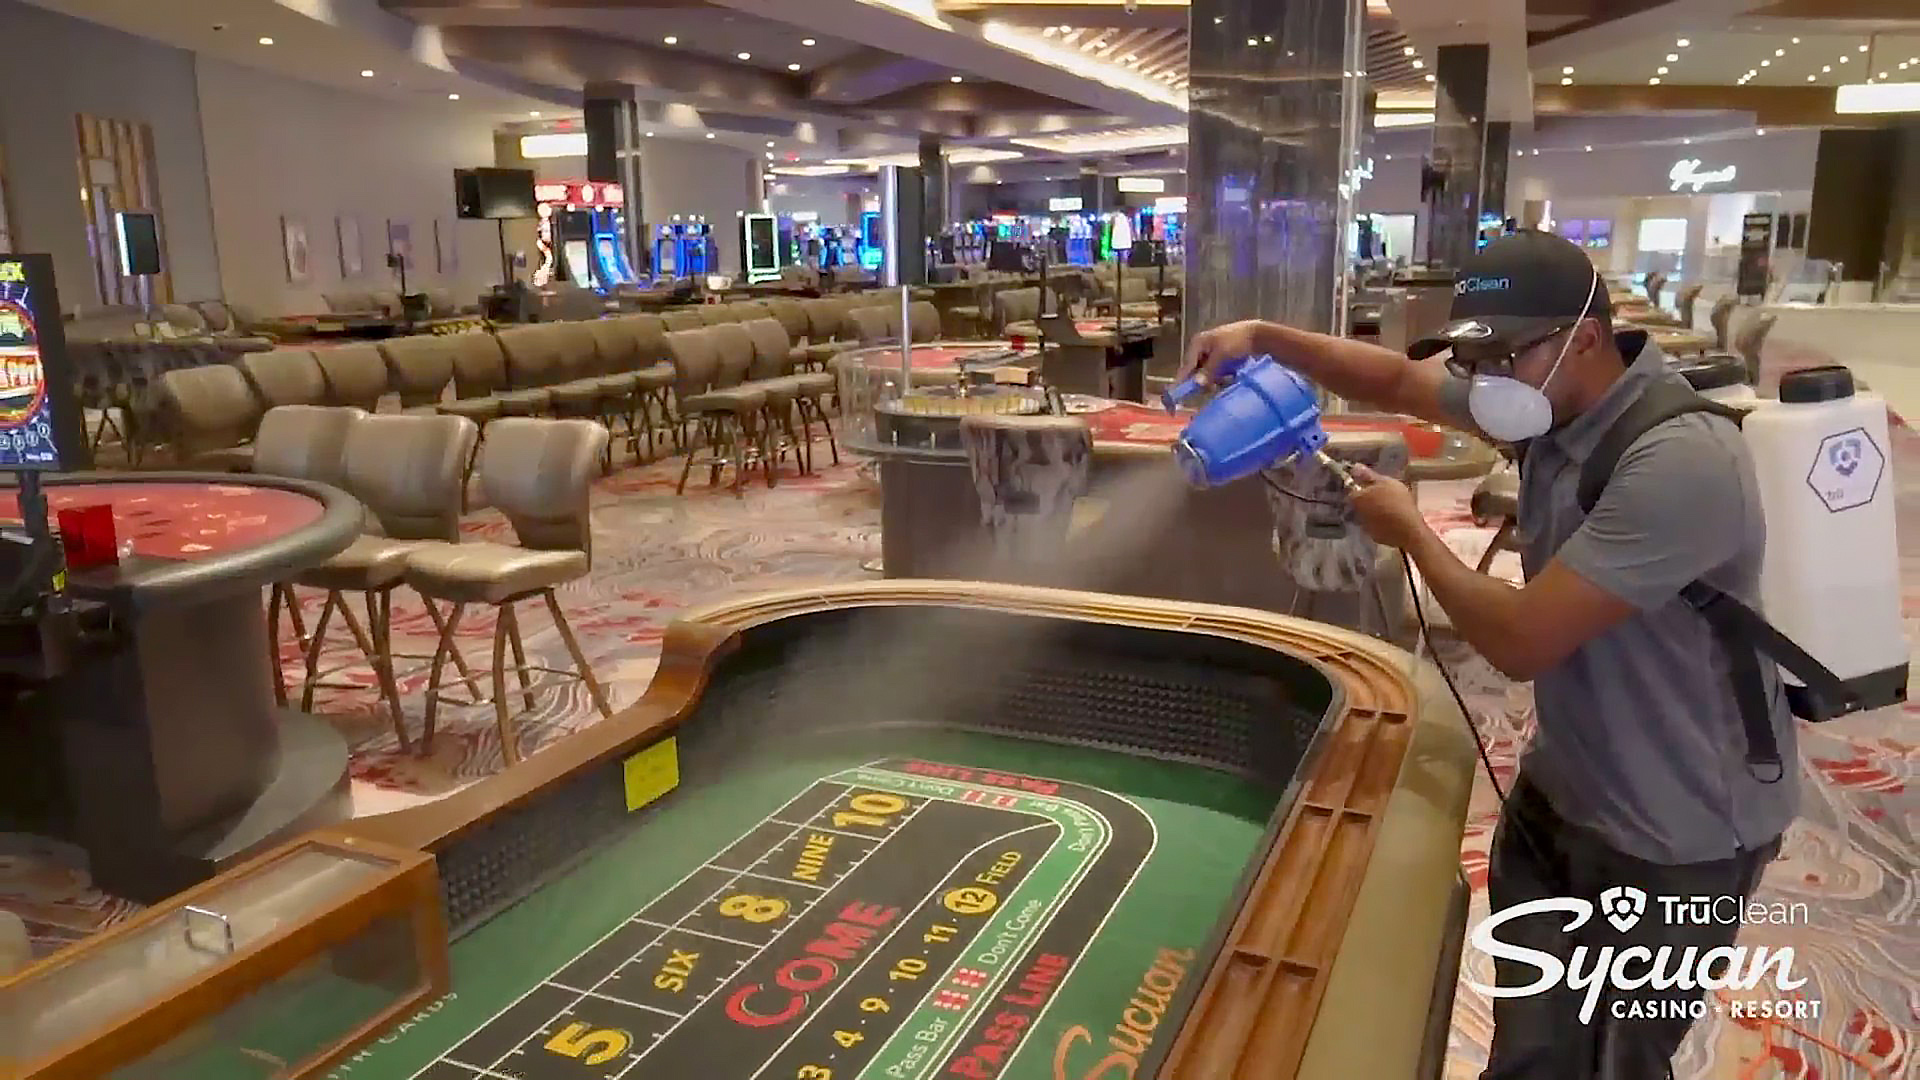 Sycuan Casino Resort Announces Reopening Date Fox 5 San Diego